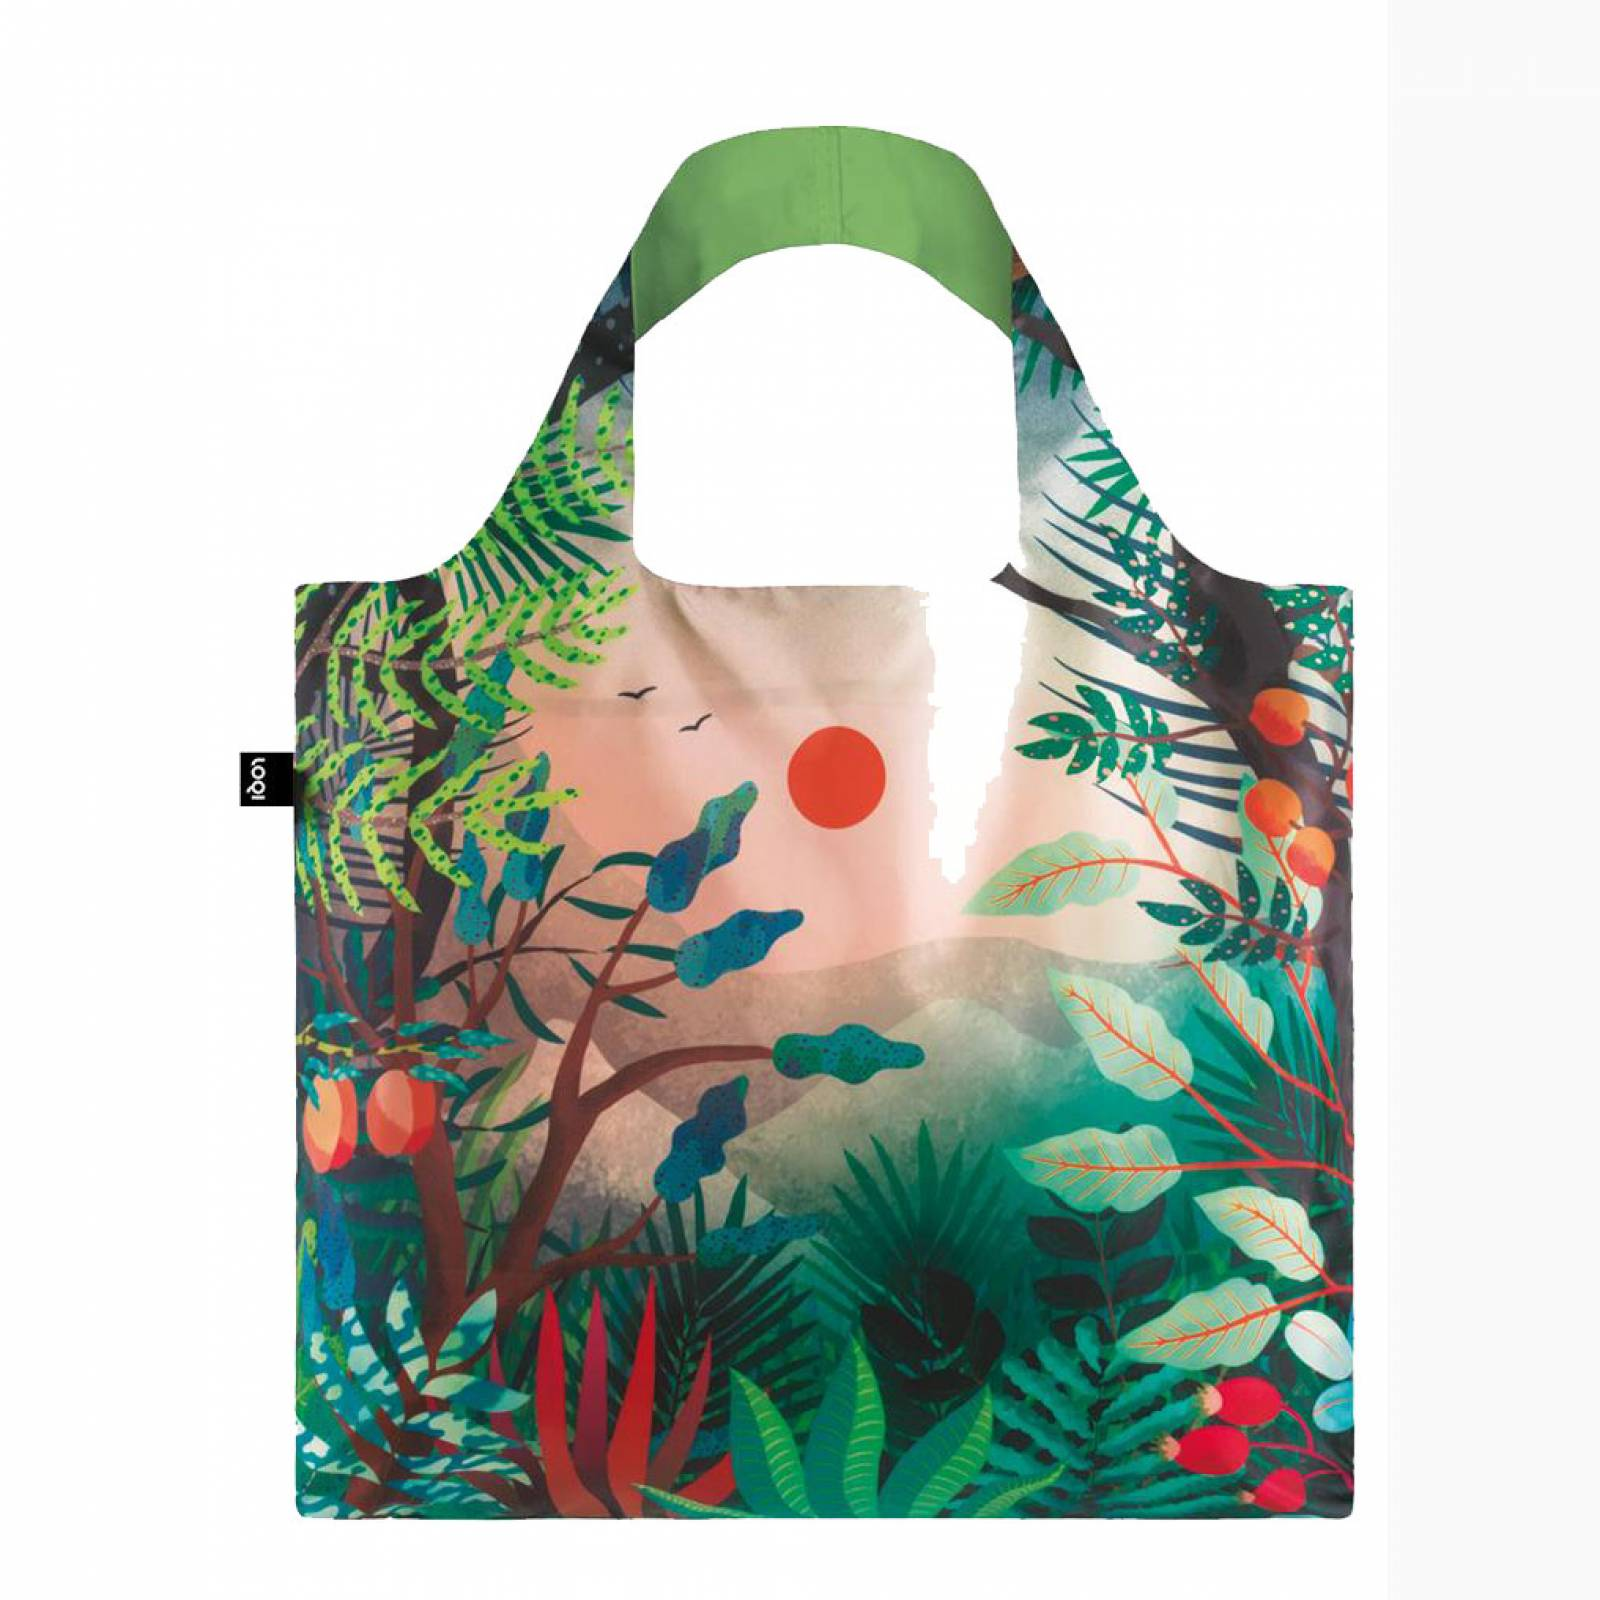 Arbaro - Reusable Tote Bag With Pouch